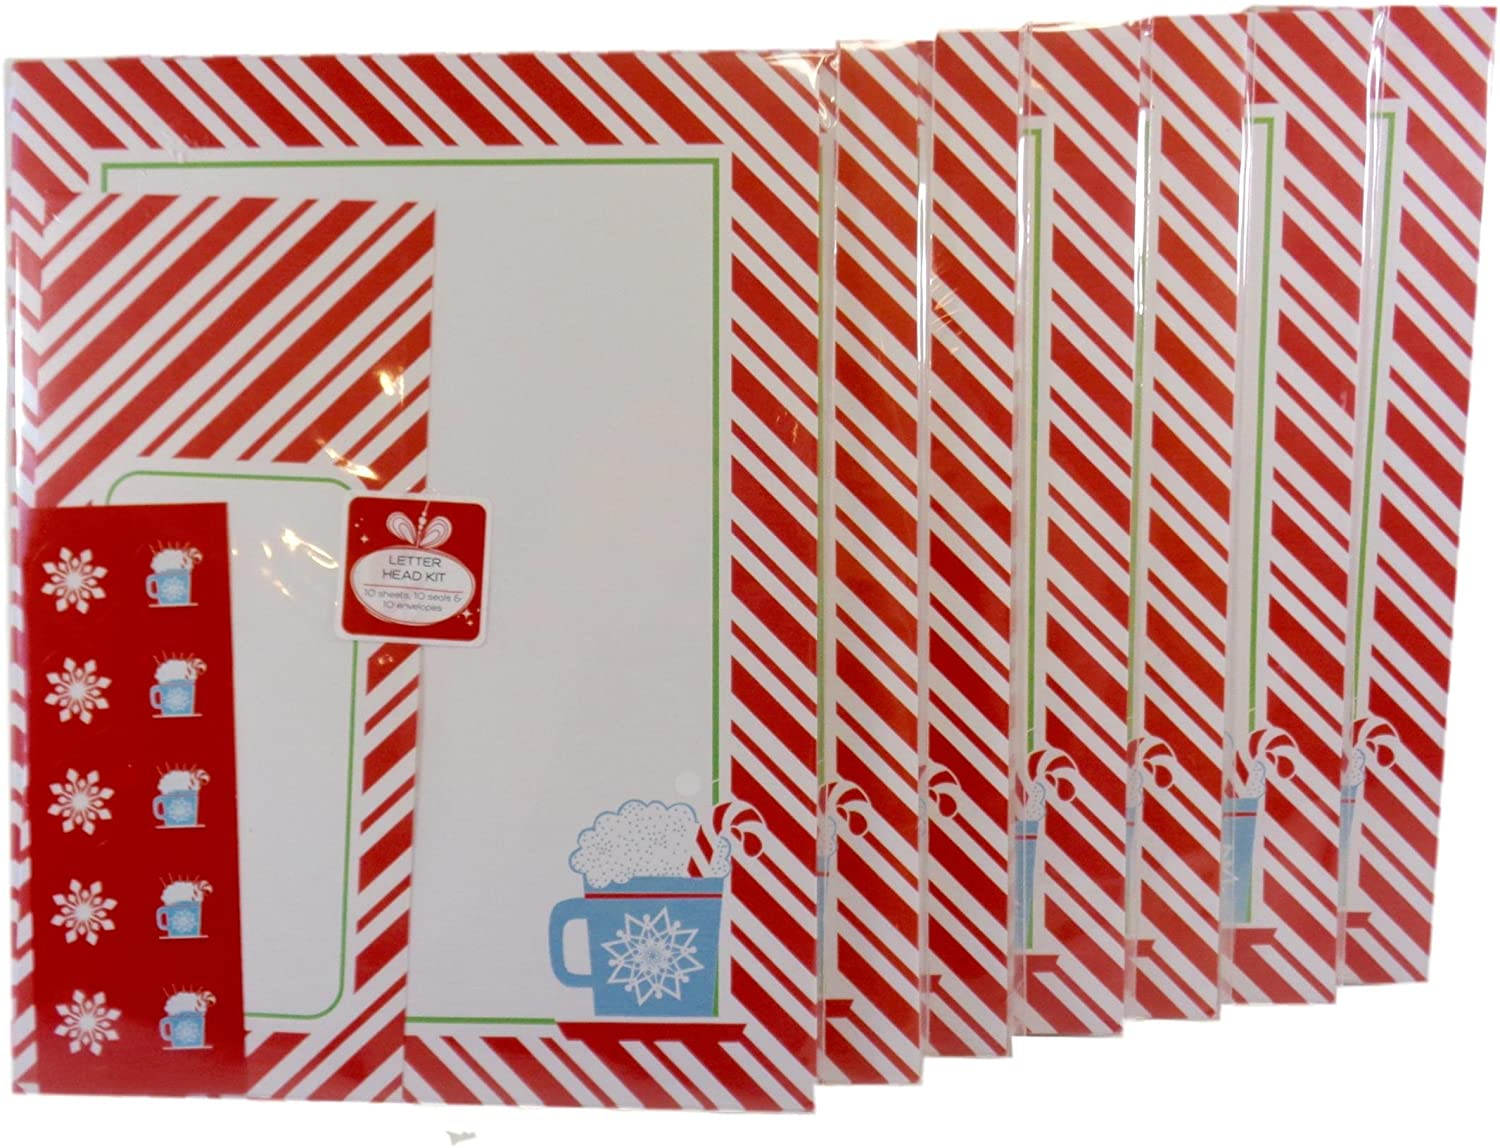 Christmas Candy Cane Striped Paper Letterhead, Envelope & Seals Stationery Set, (10) Sheets/Pkg. Pack of (7)